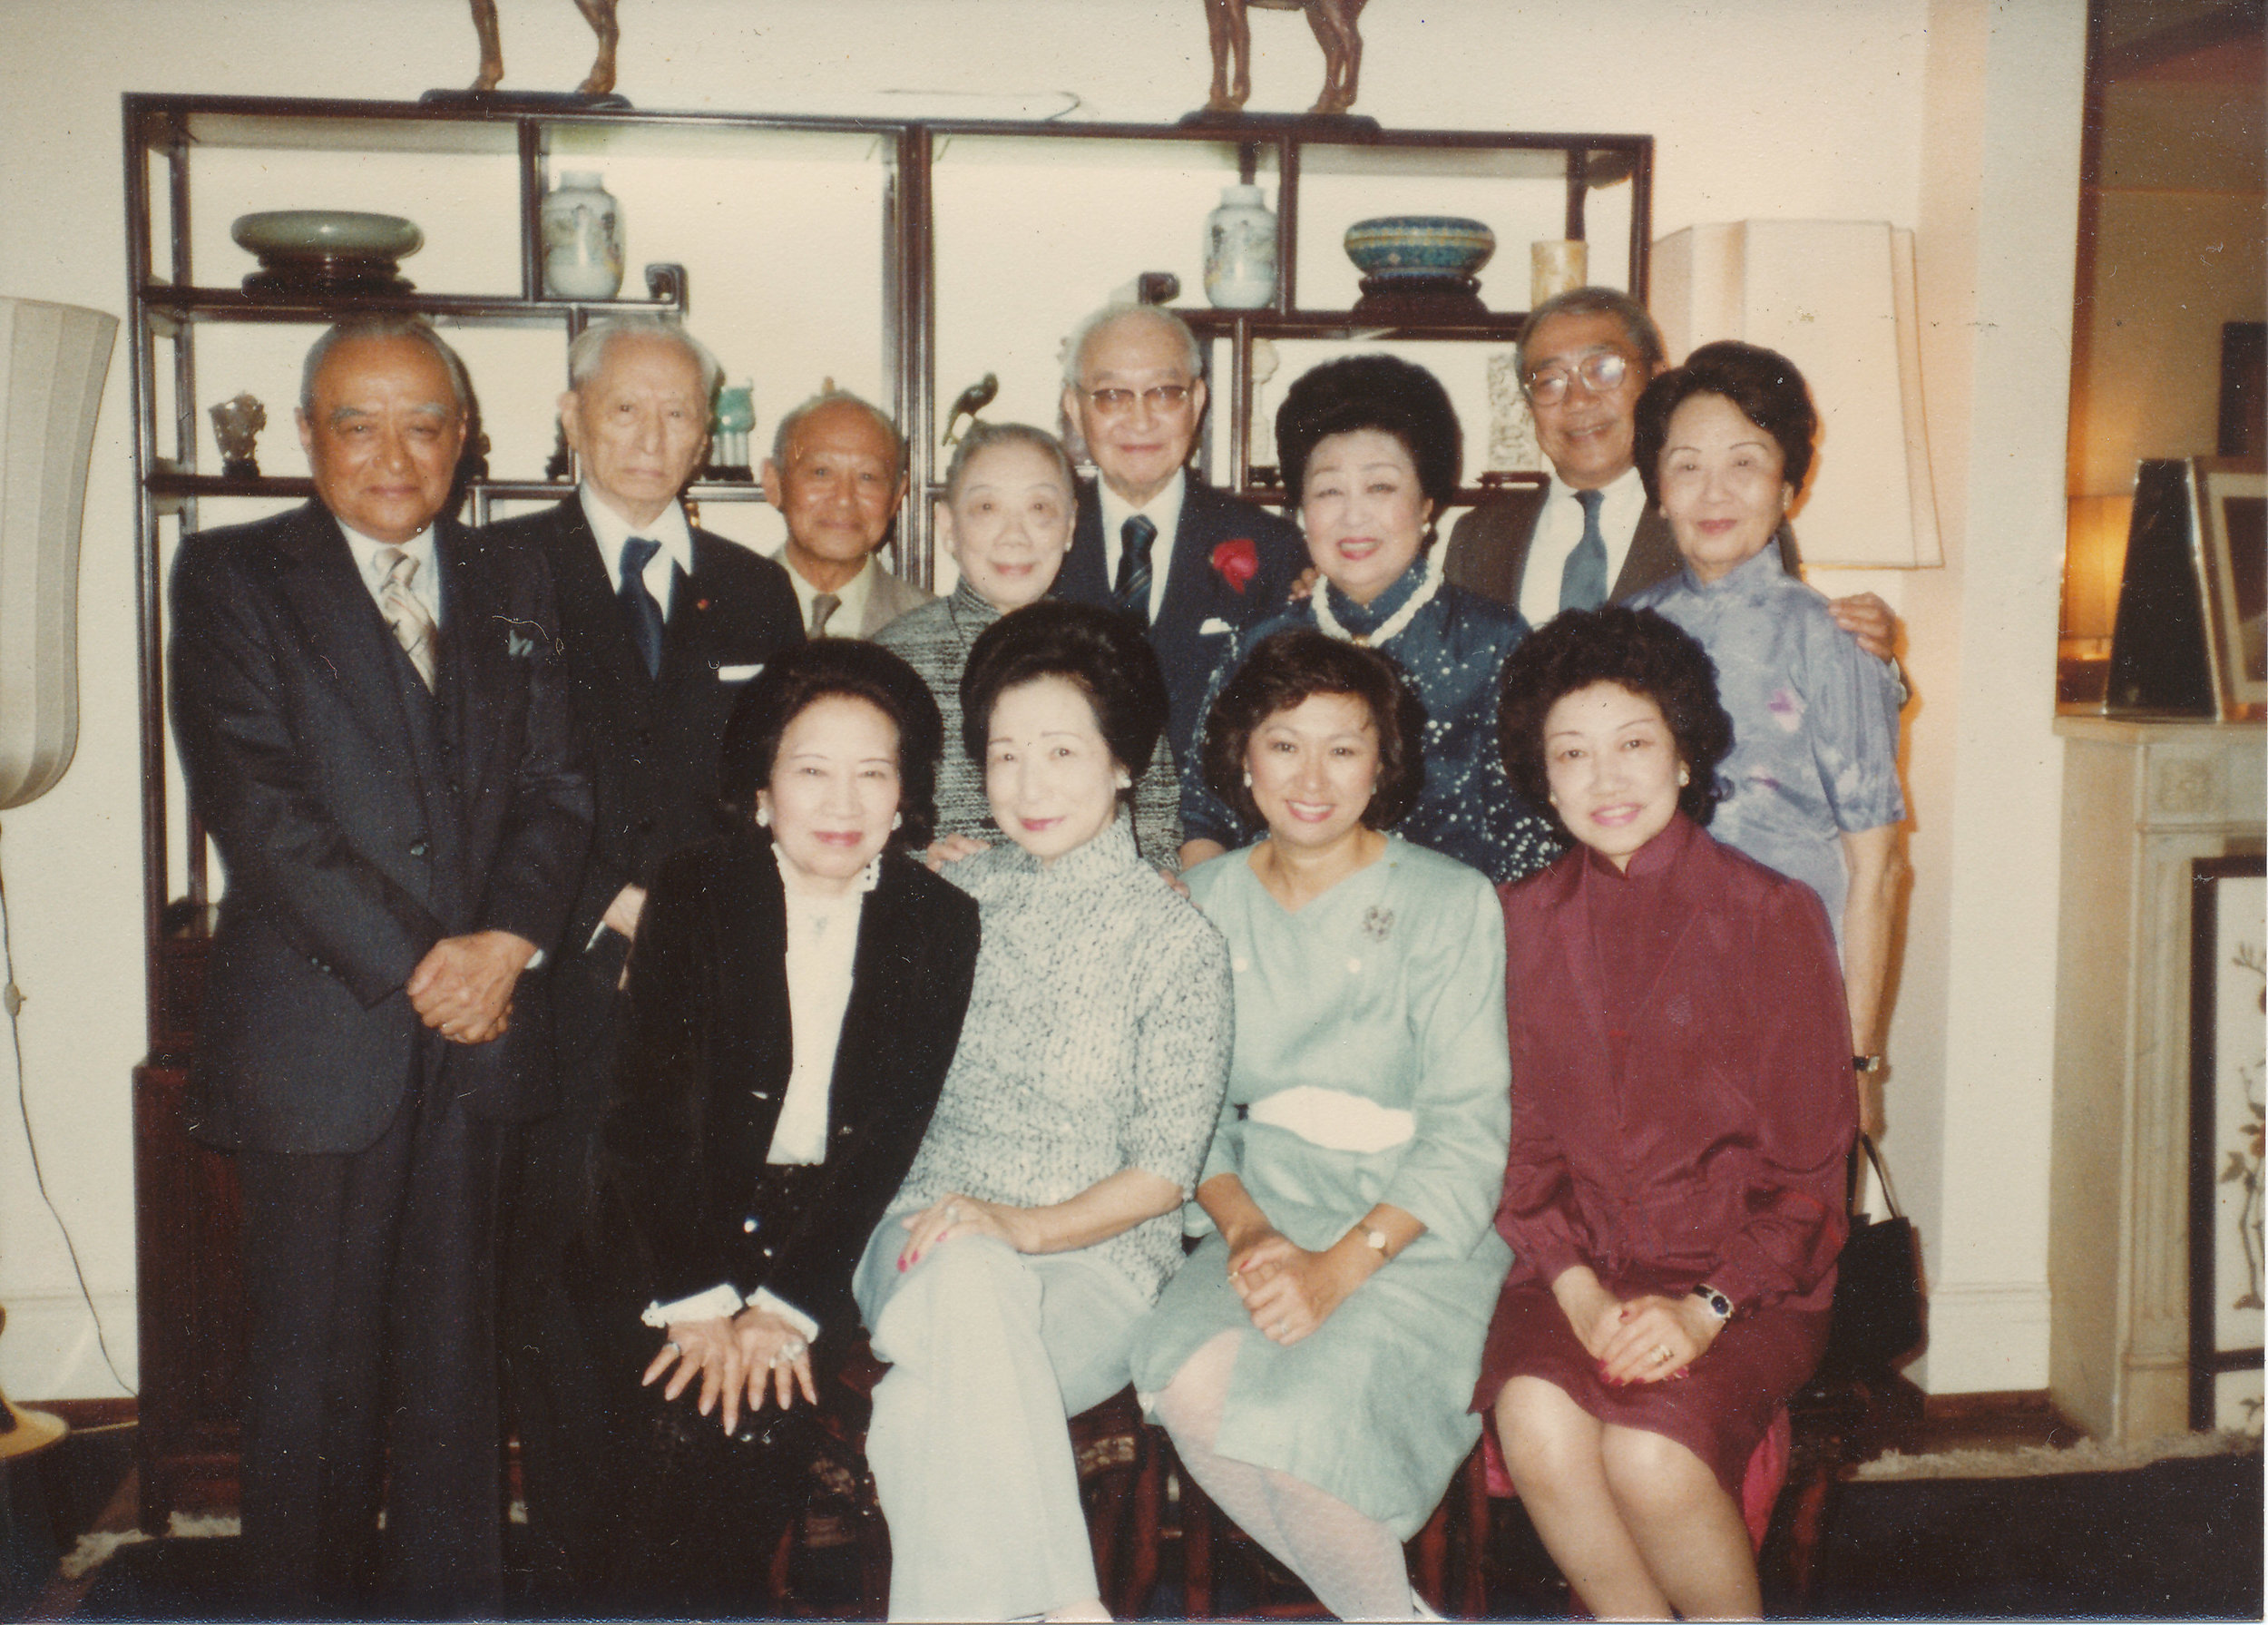 Back row left to right:YL Chang (longtime banker at the World Bank),Wellington Koo (Chinese diplomat), Wally Kwok ,JT Chu (chairman of Shanghai Commercial Bank),Mrs JT Chu,Mrs. Wellington Koo (Juliana Yen),TC Hsu (longtime head of Starr Foundation),Jane Wen (niece of diplomat Alfred SK Sze and wife of Dr YC Wen).  Front row left to right:Aileen Pei (stepmother of I.M. Pei),Julie Kwok (wife of Wally)Shirley Young (daughter of Mrs Koo, former GM executive and Committee of 100 member),Joan Chu (daughter of JT Chu), ca. 1980.Courtesy Leonard Woo.